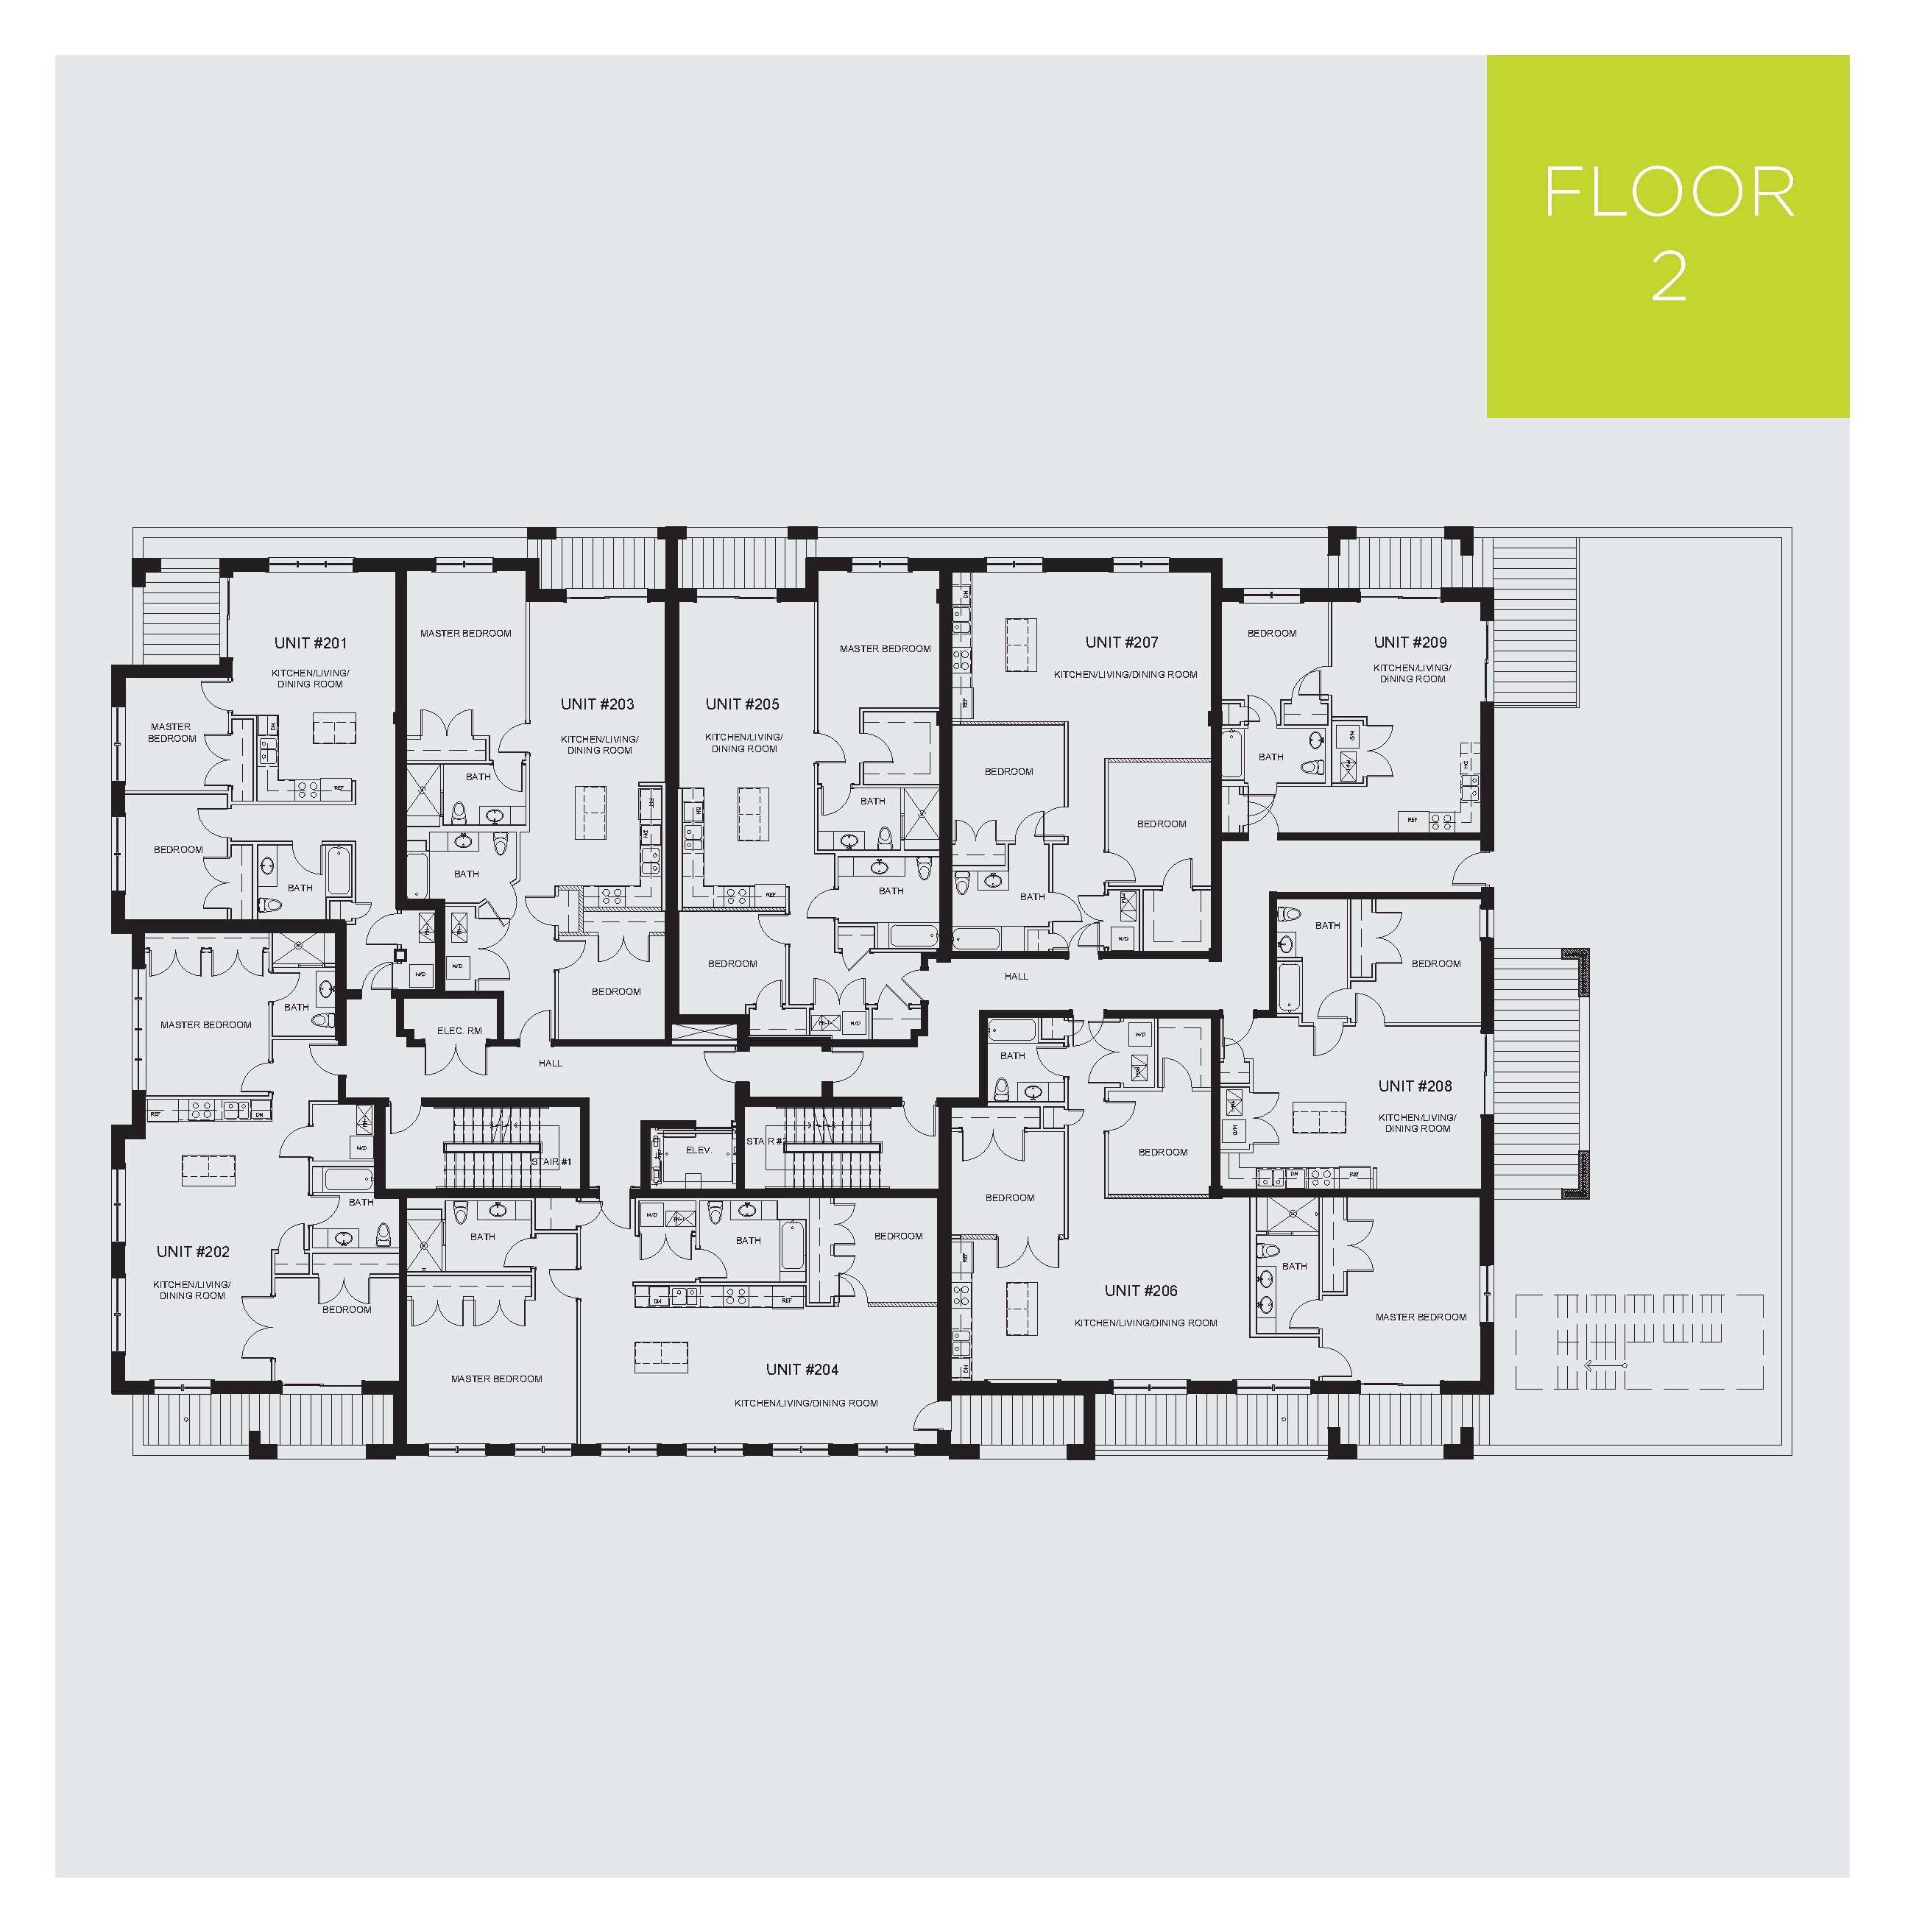 Building floor plans - RavenLux Apartments